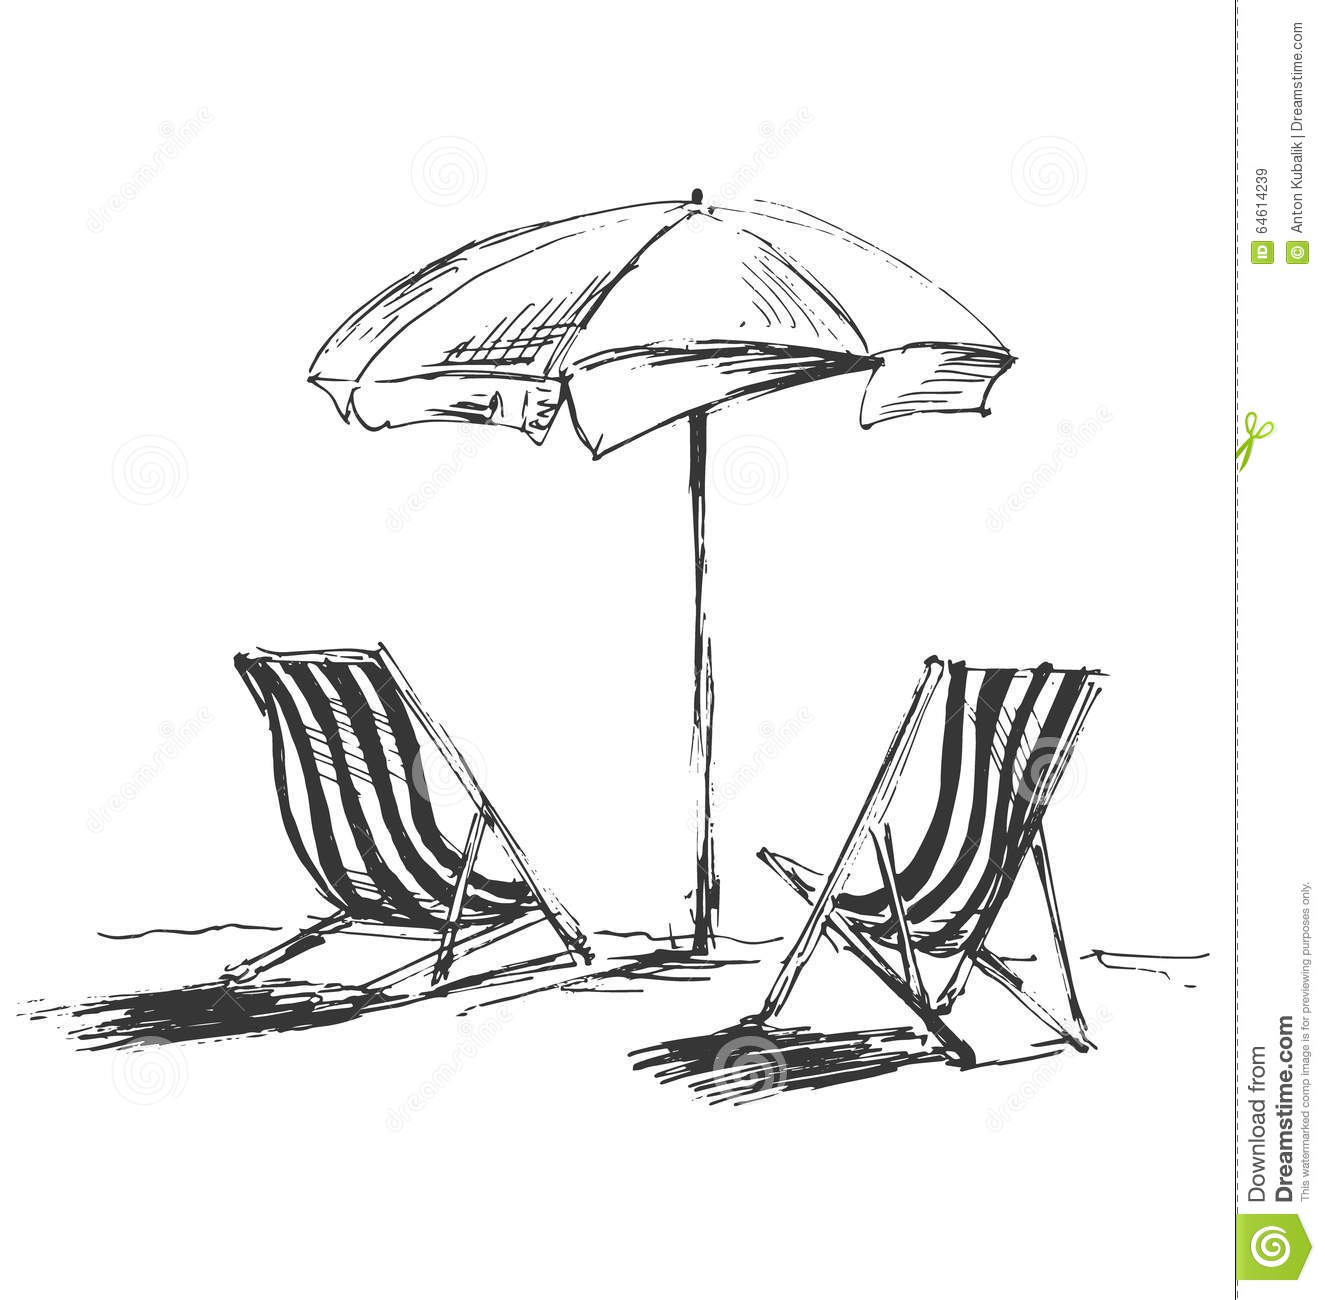 Chair beach umbrella and chair black and white - Royalty Free Vector Download Hand Sketch With Beach Chairs